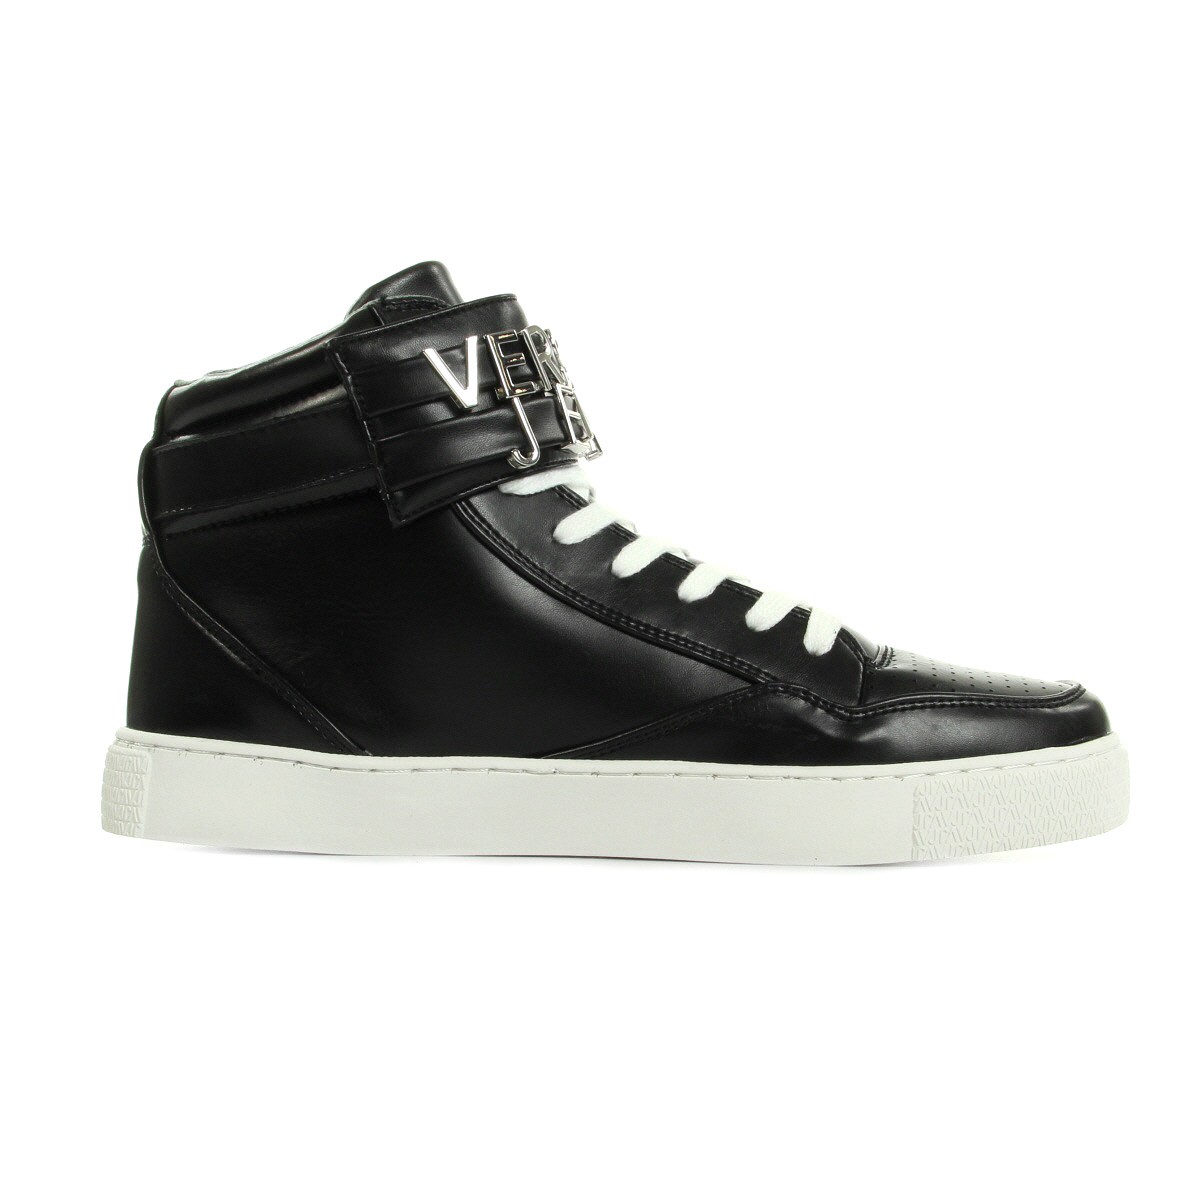 versace jeans sneaker uomo dise5 lettering coating e0ypbse5m10 chaussures homme homme. Black Bedroom Furniture Sets. Home Design Ideas